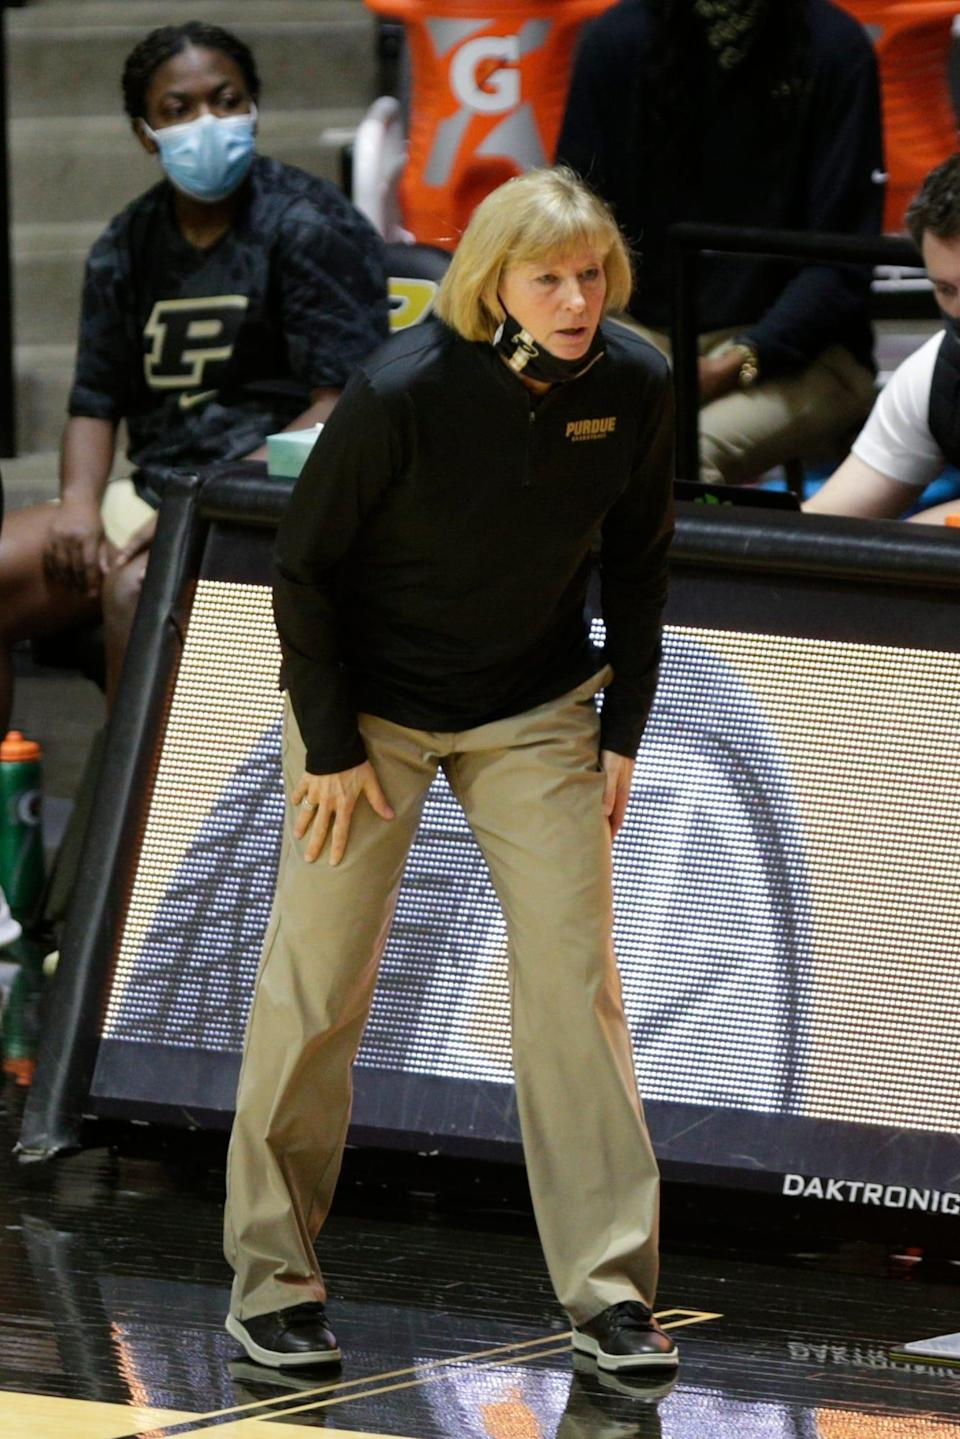 Purdue head coach Sharon Versyp during the first quarter of an NCAA women's basketball game, Thursday, Feb. 11, 2021 at Mackey Arena in West Lafayette.